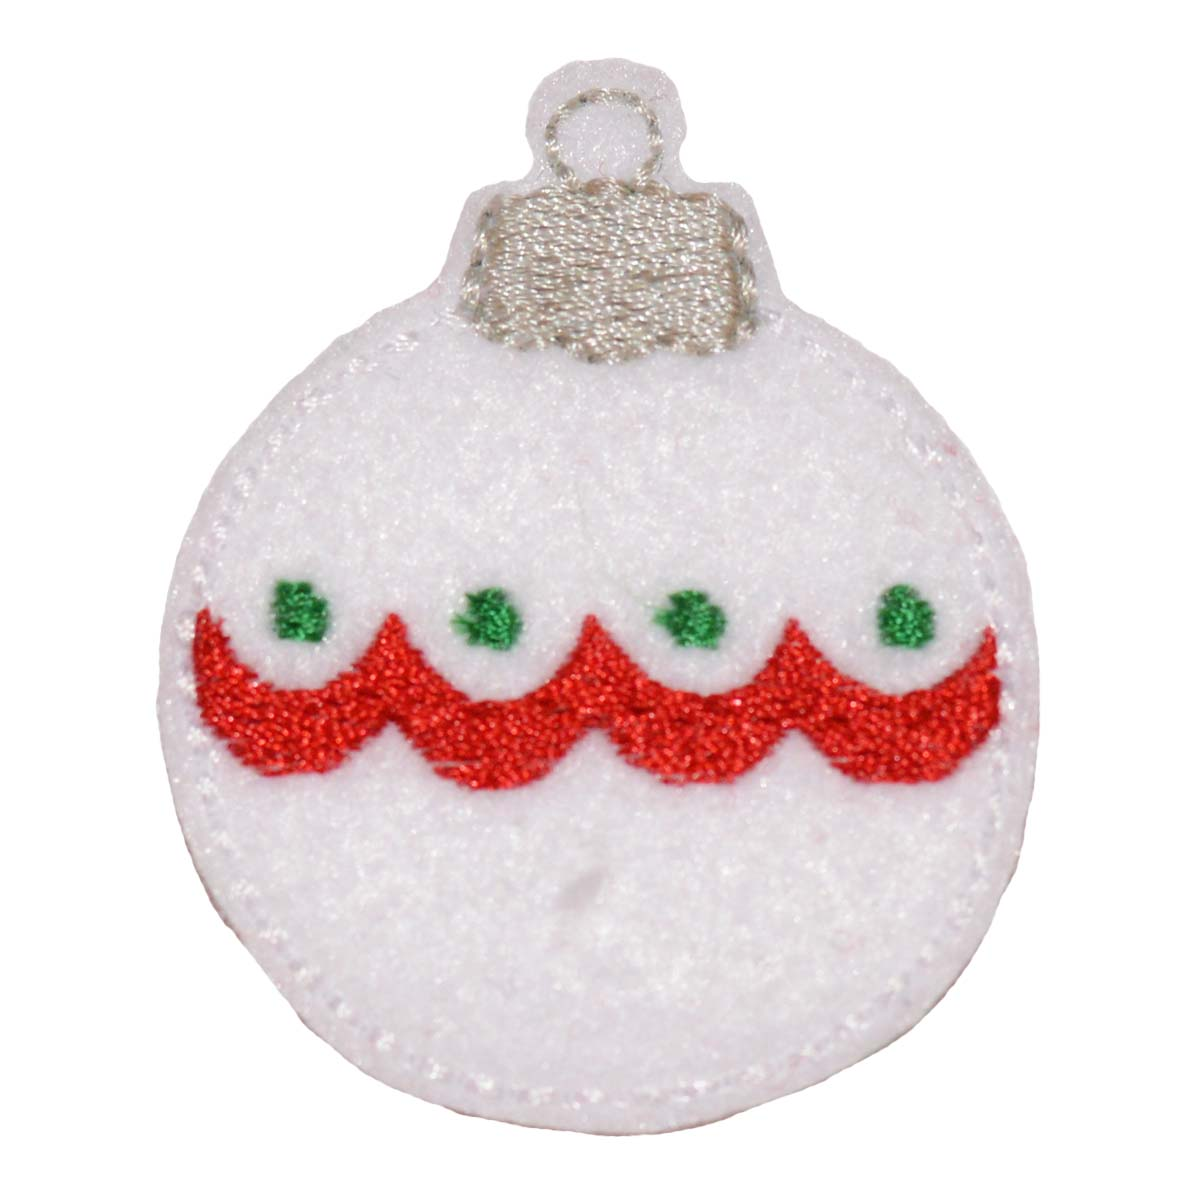 Christmas Ornament Round Embroidery File